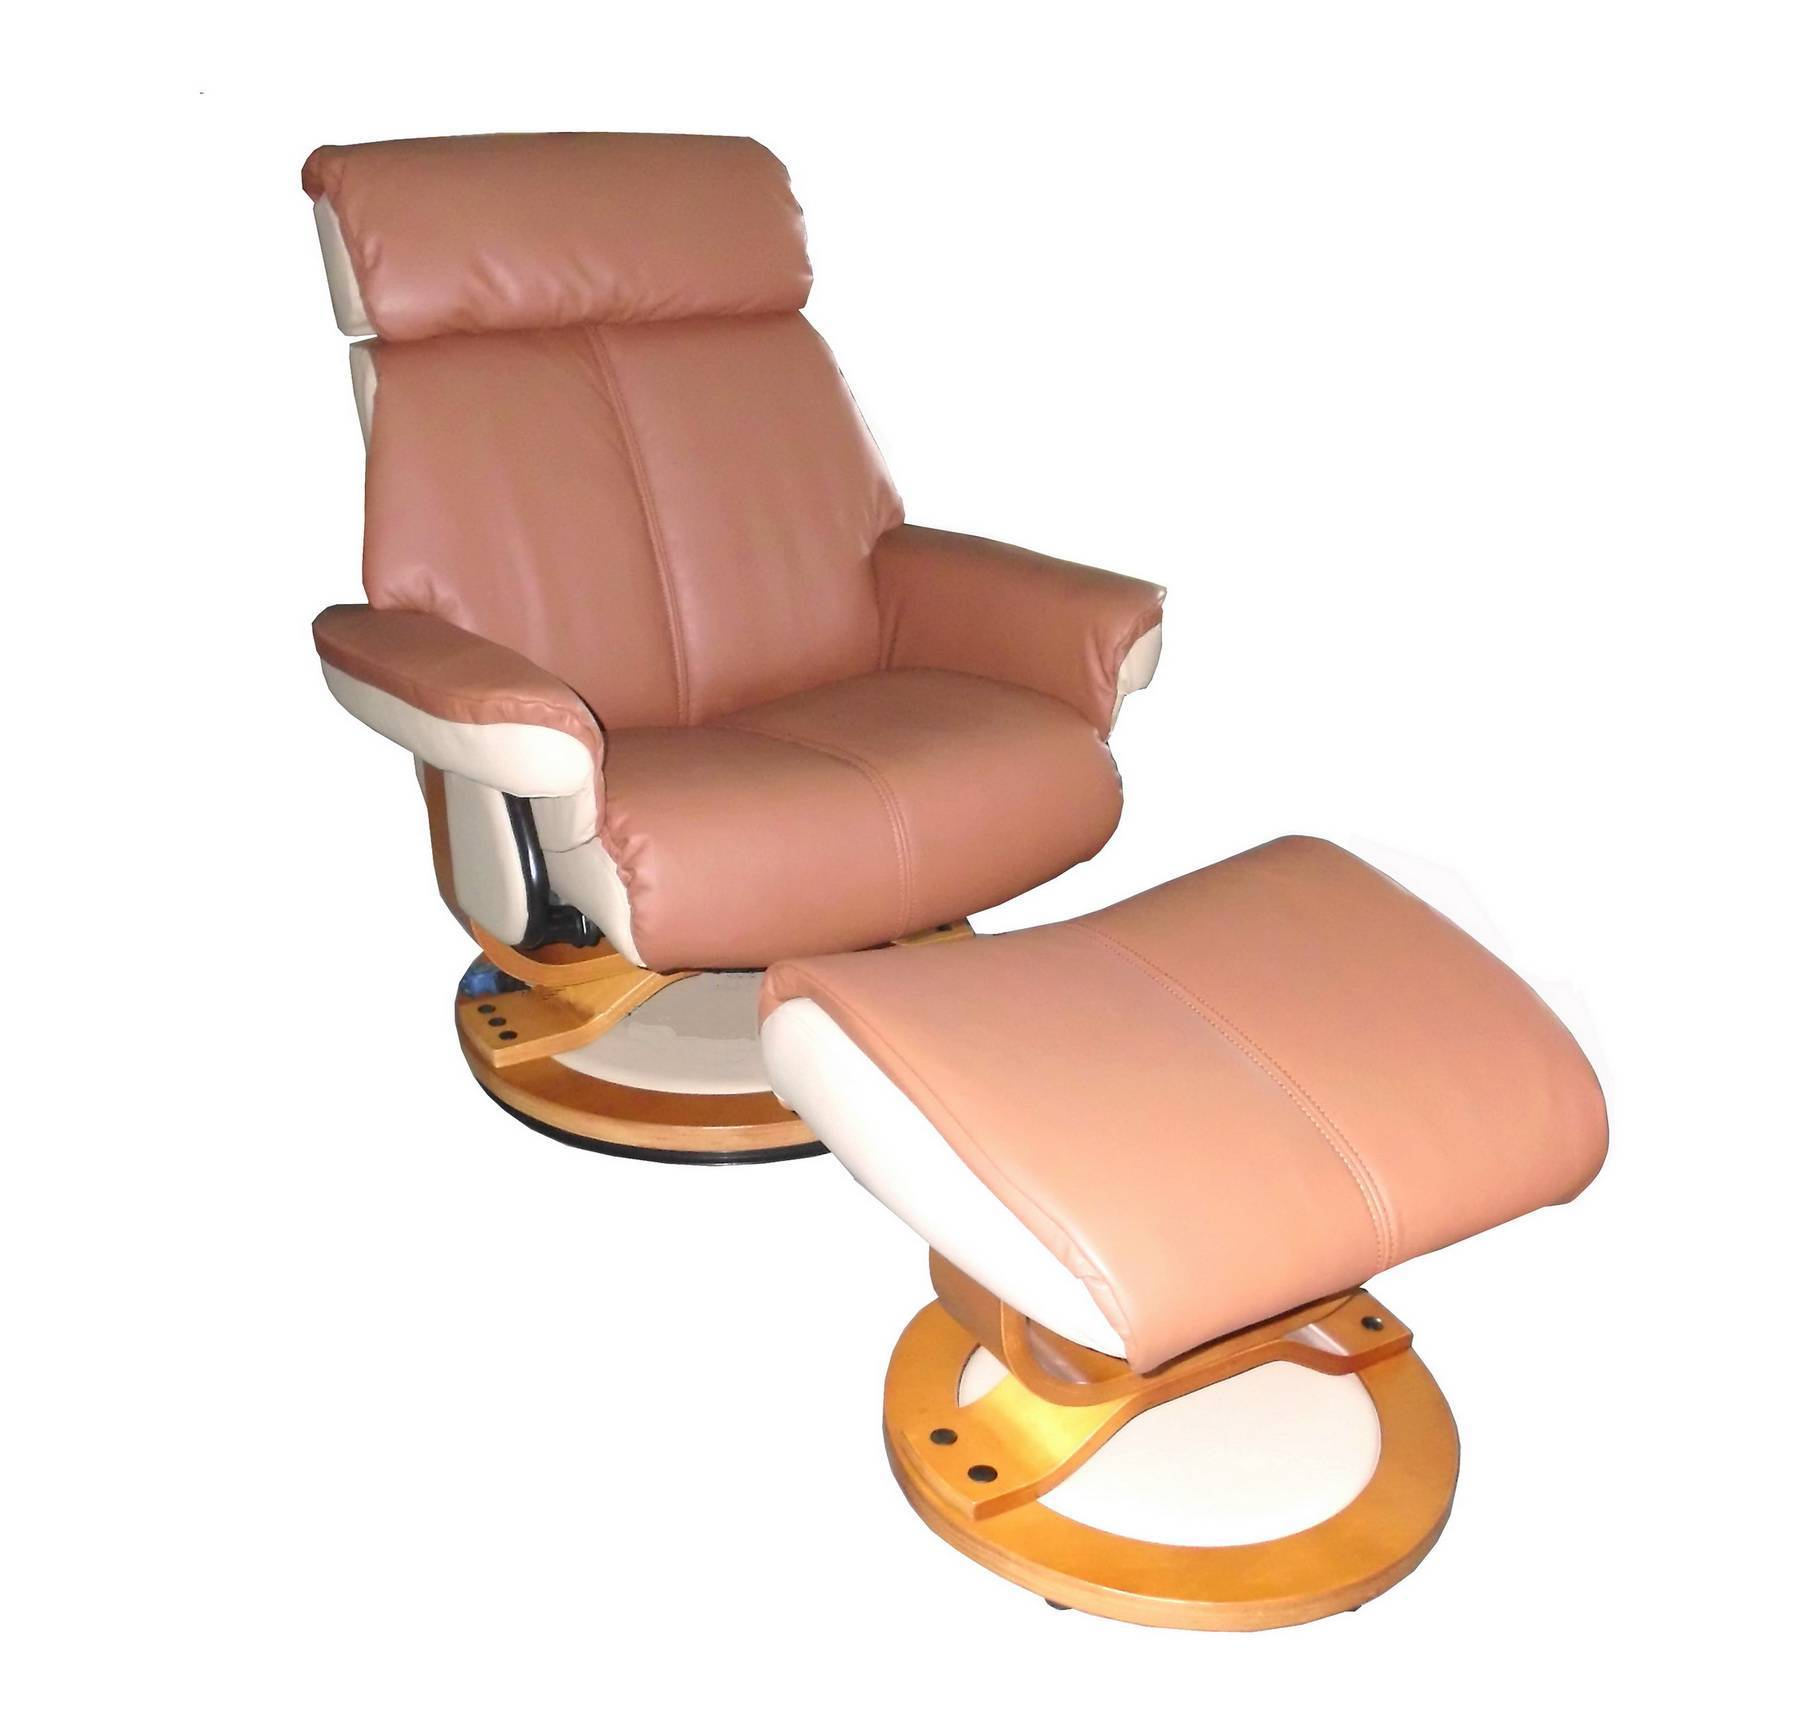 BH-8173-2 Recliner Chair, Recliner Sofa, Reclining Chair, Home Furniture